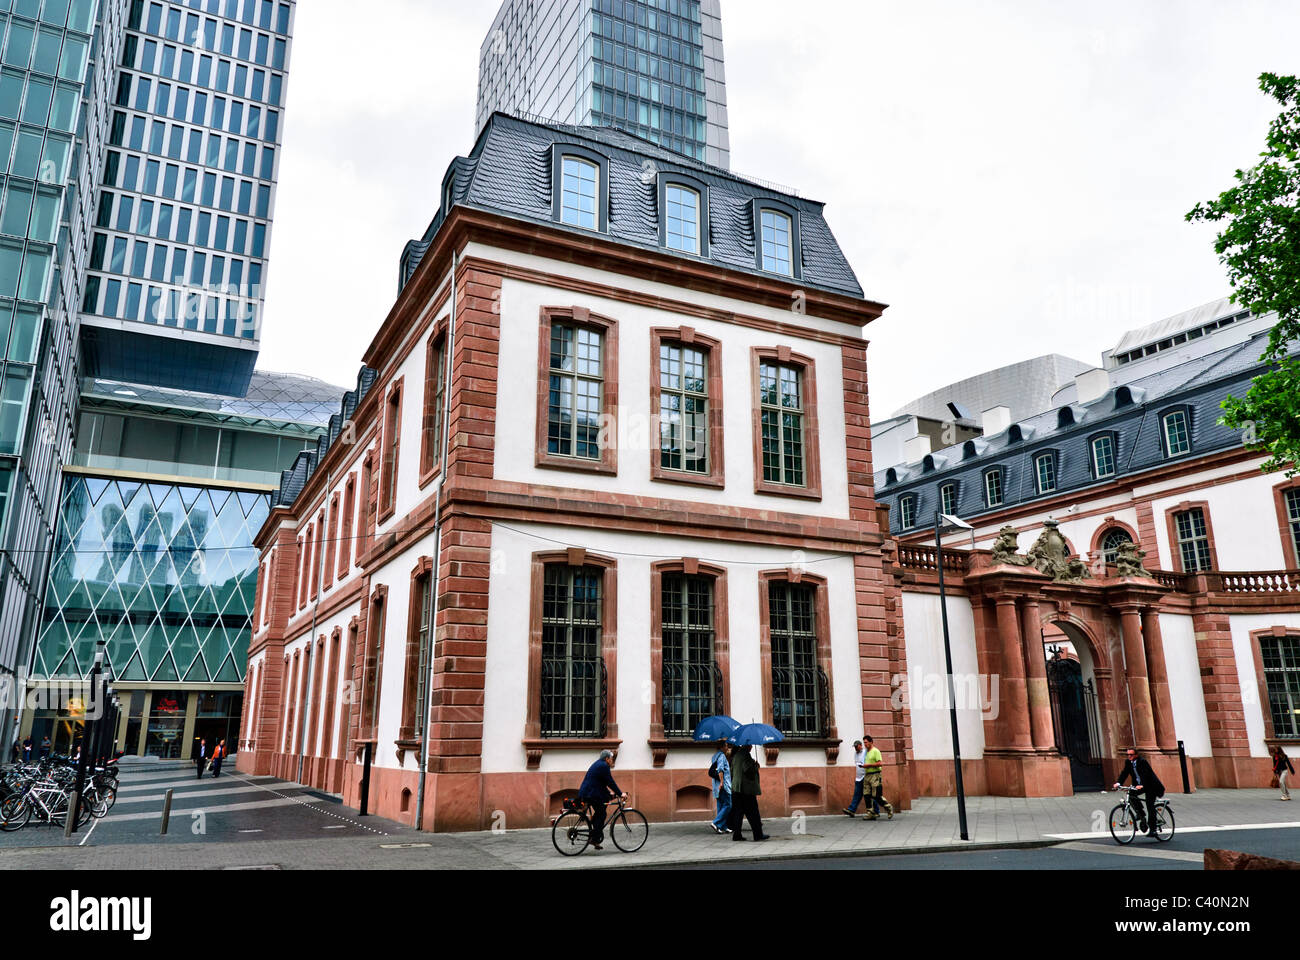 Palais Thurn und Taxis in Palais Quartier Frankfurt Zeil, Germany - Stock Image